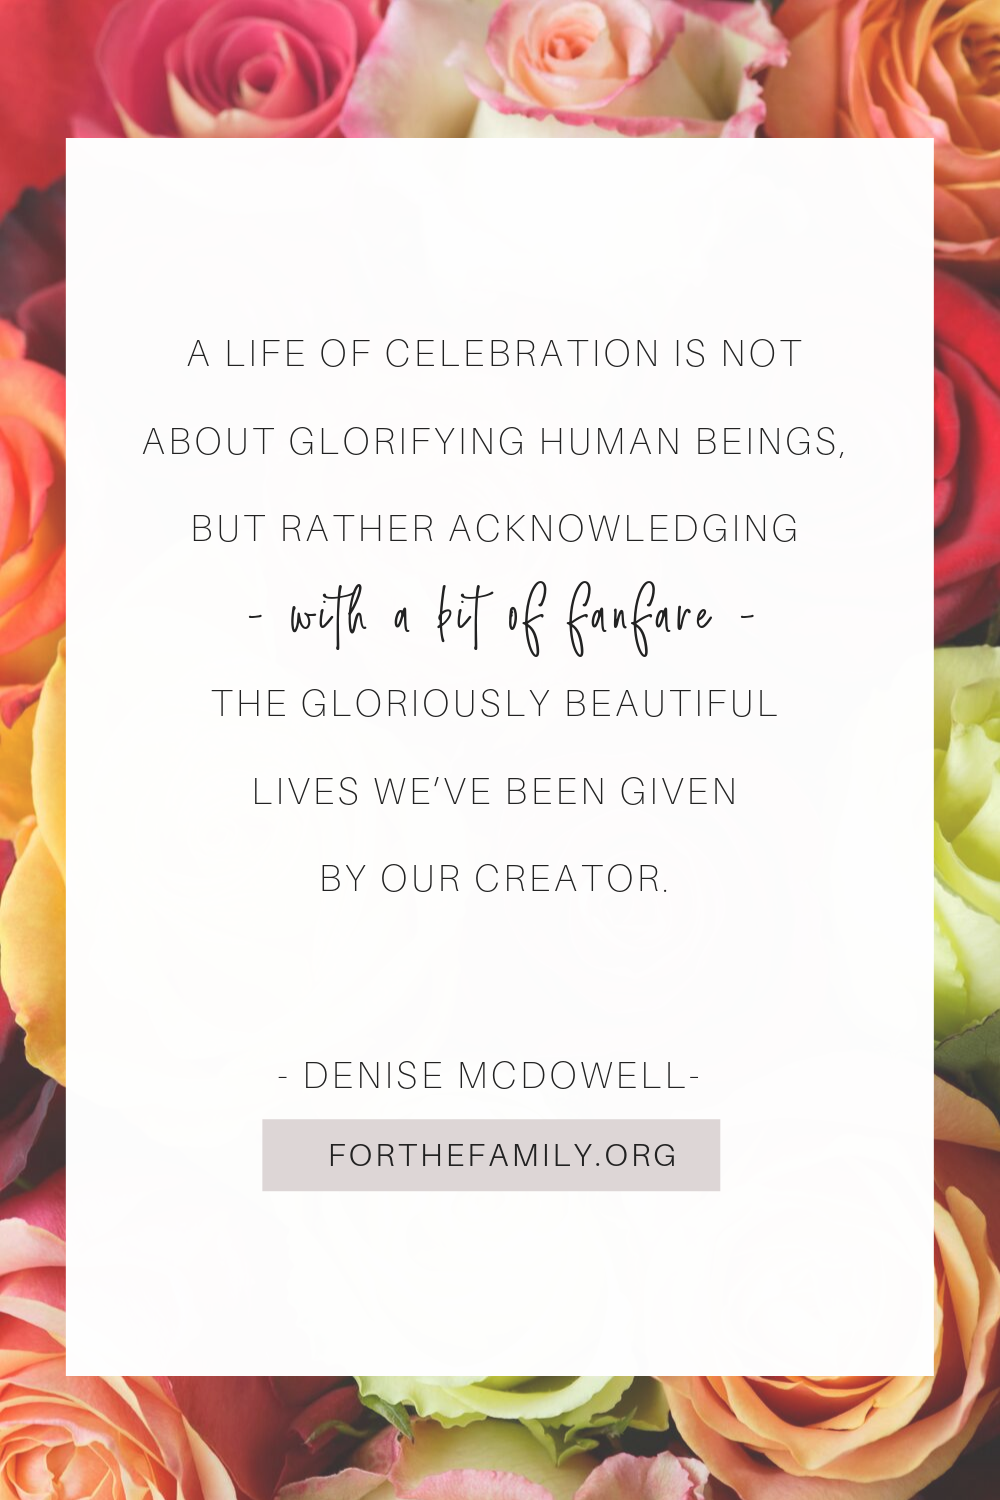 What does living a life of celebration require? It's not about throwing the best party and living over the top, but rather about celebrating the gifts we've been given by a God who loves us. Are you ready to respond to Him with joy?